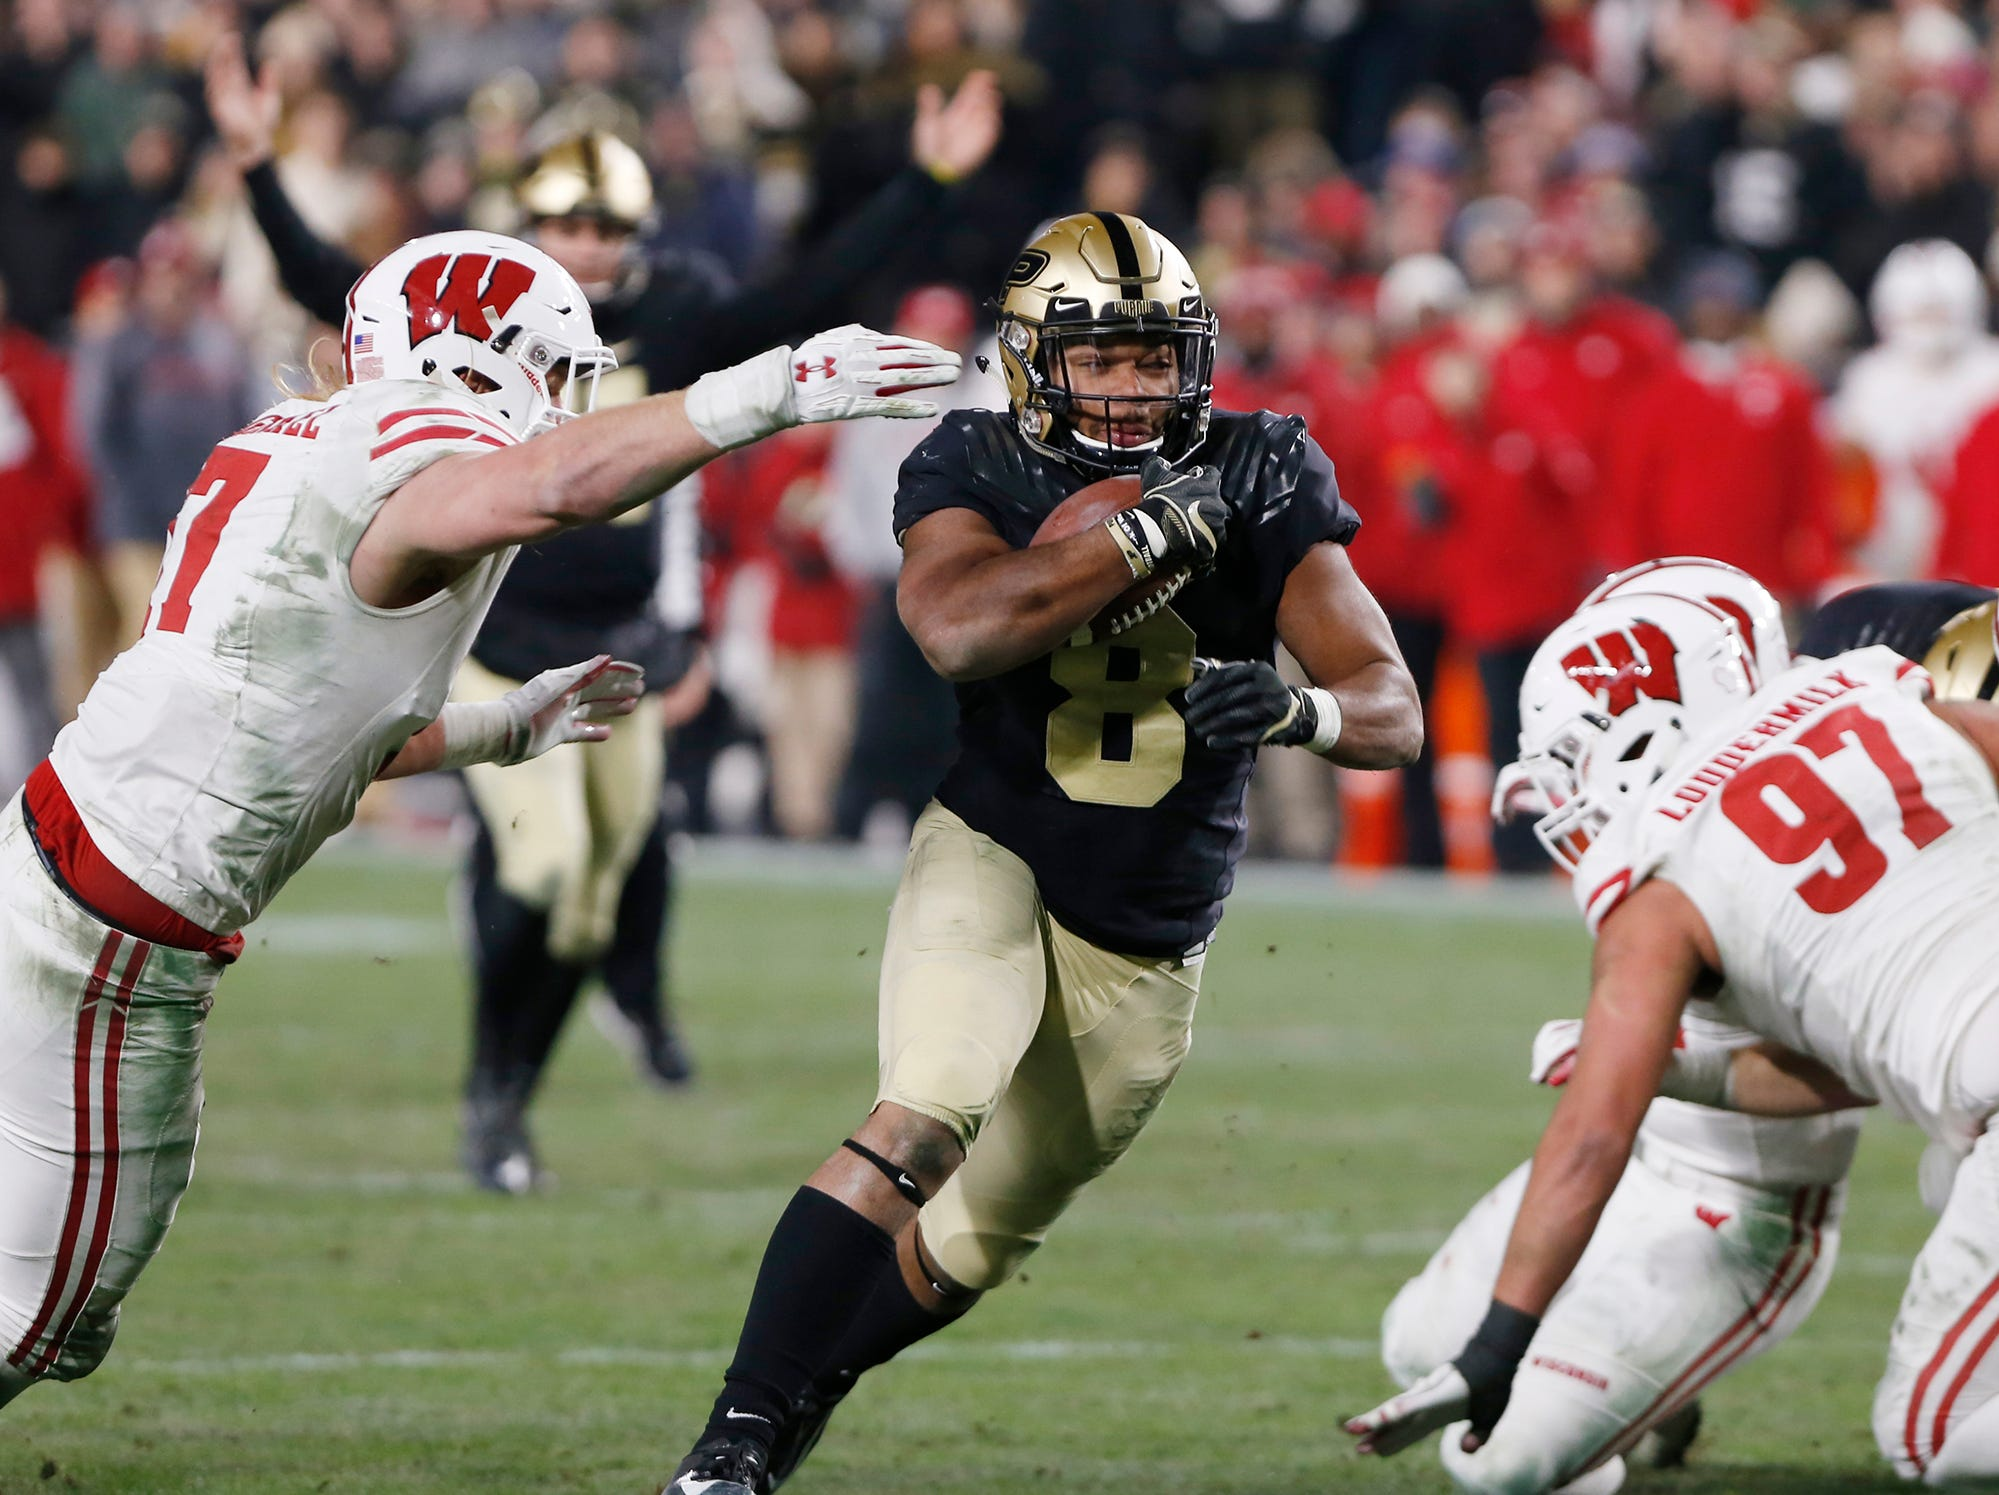 Markell Jones of Purdue finds a hole in the  Wisconsin defensive line and carries for a touchdown at 4:08 in the third quarter Saturday, November 17, 2018, at Ross-Ade Stadium. Purdue fell to Wisconsin 47-44 3OT.